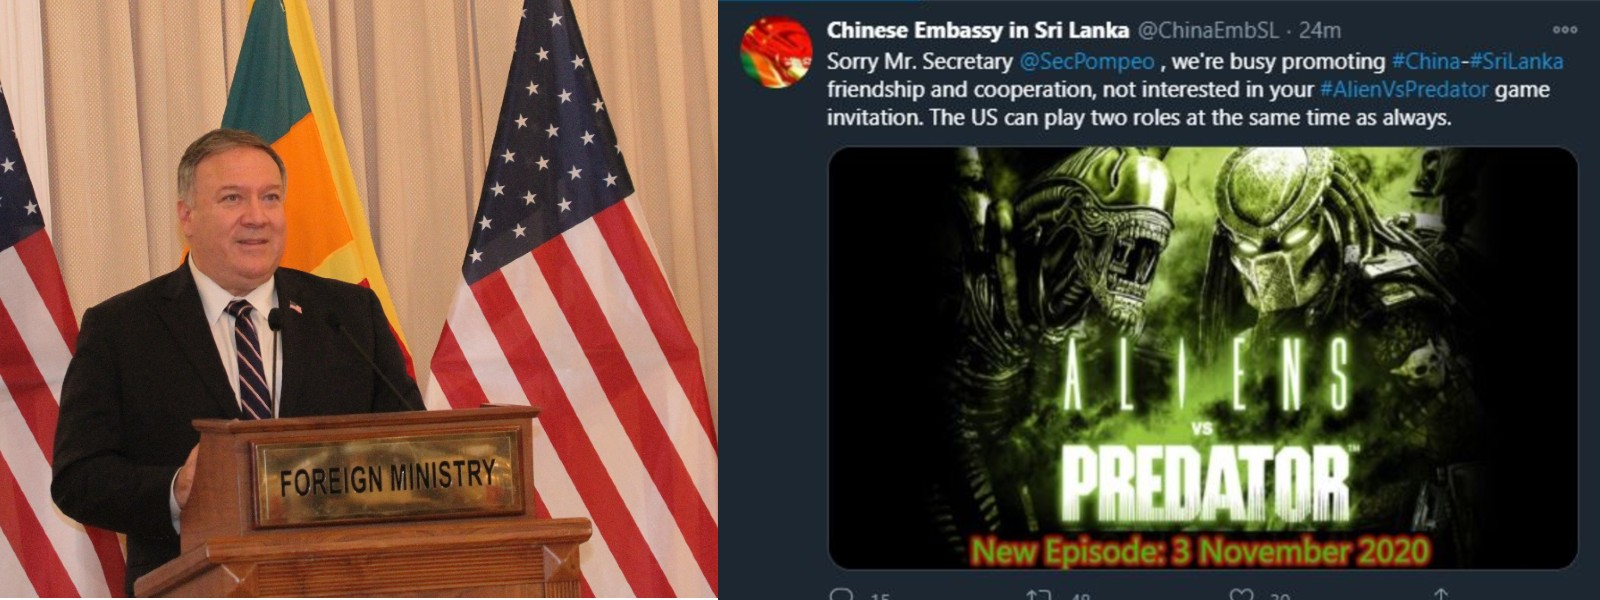 'AlienVsPredator' : China hits back at Mike Pompeo's comments